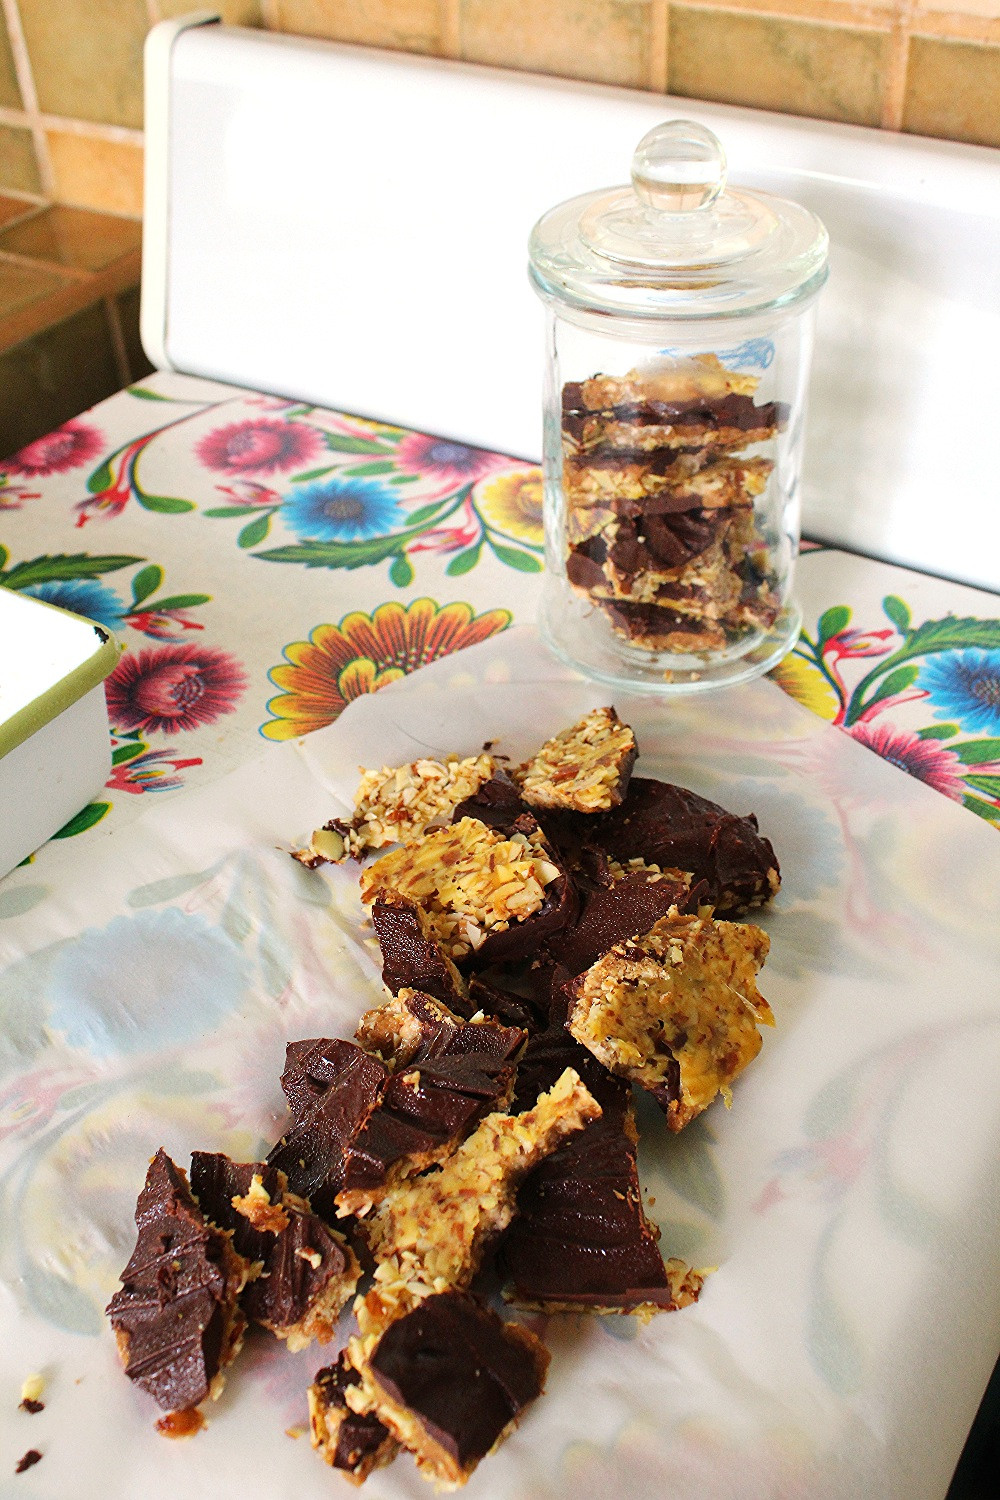 Toffee,Almond Candy